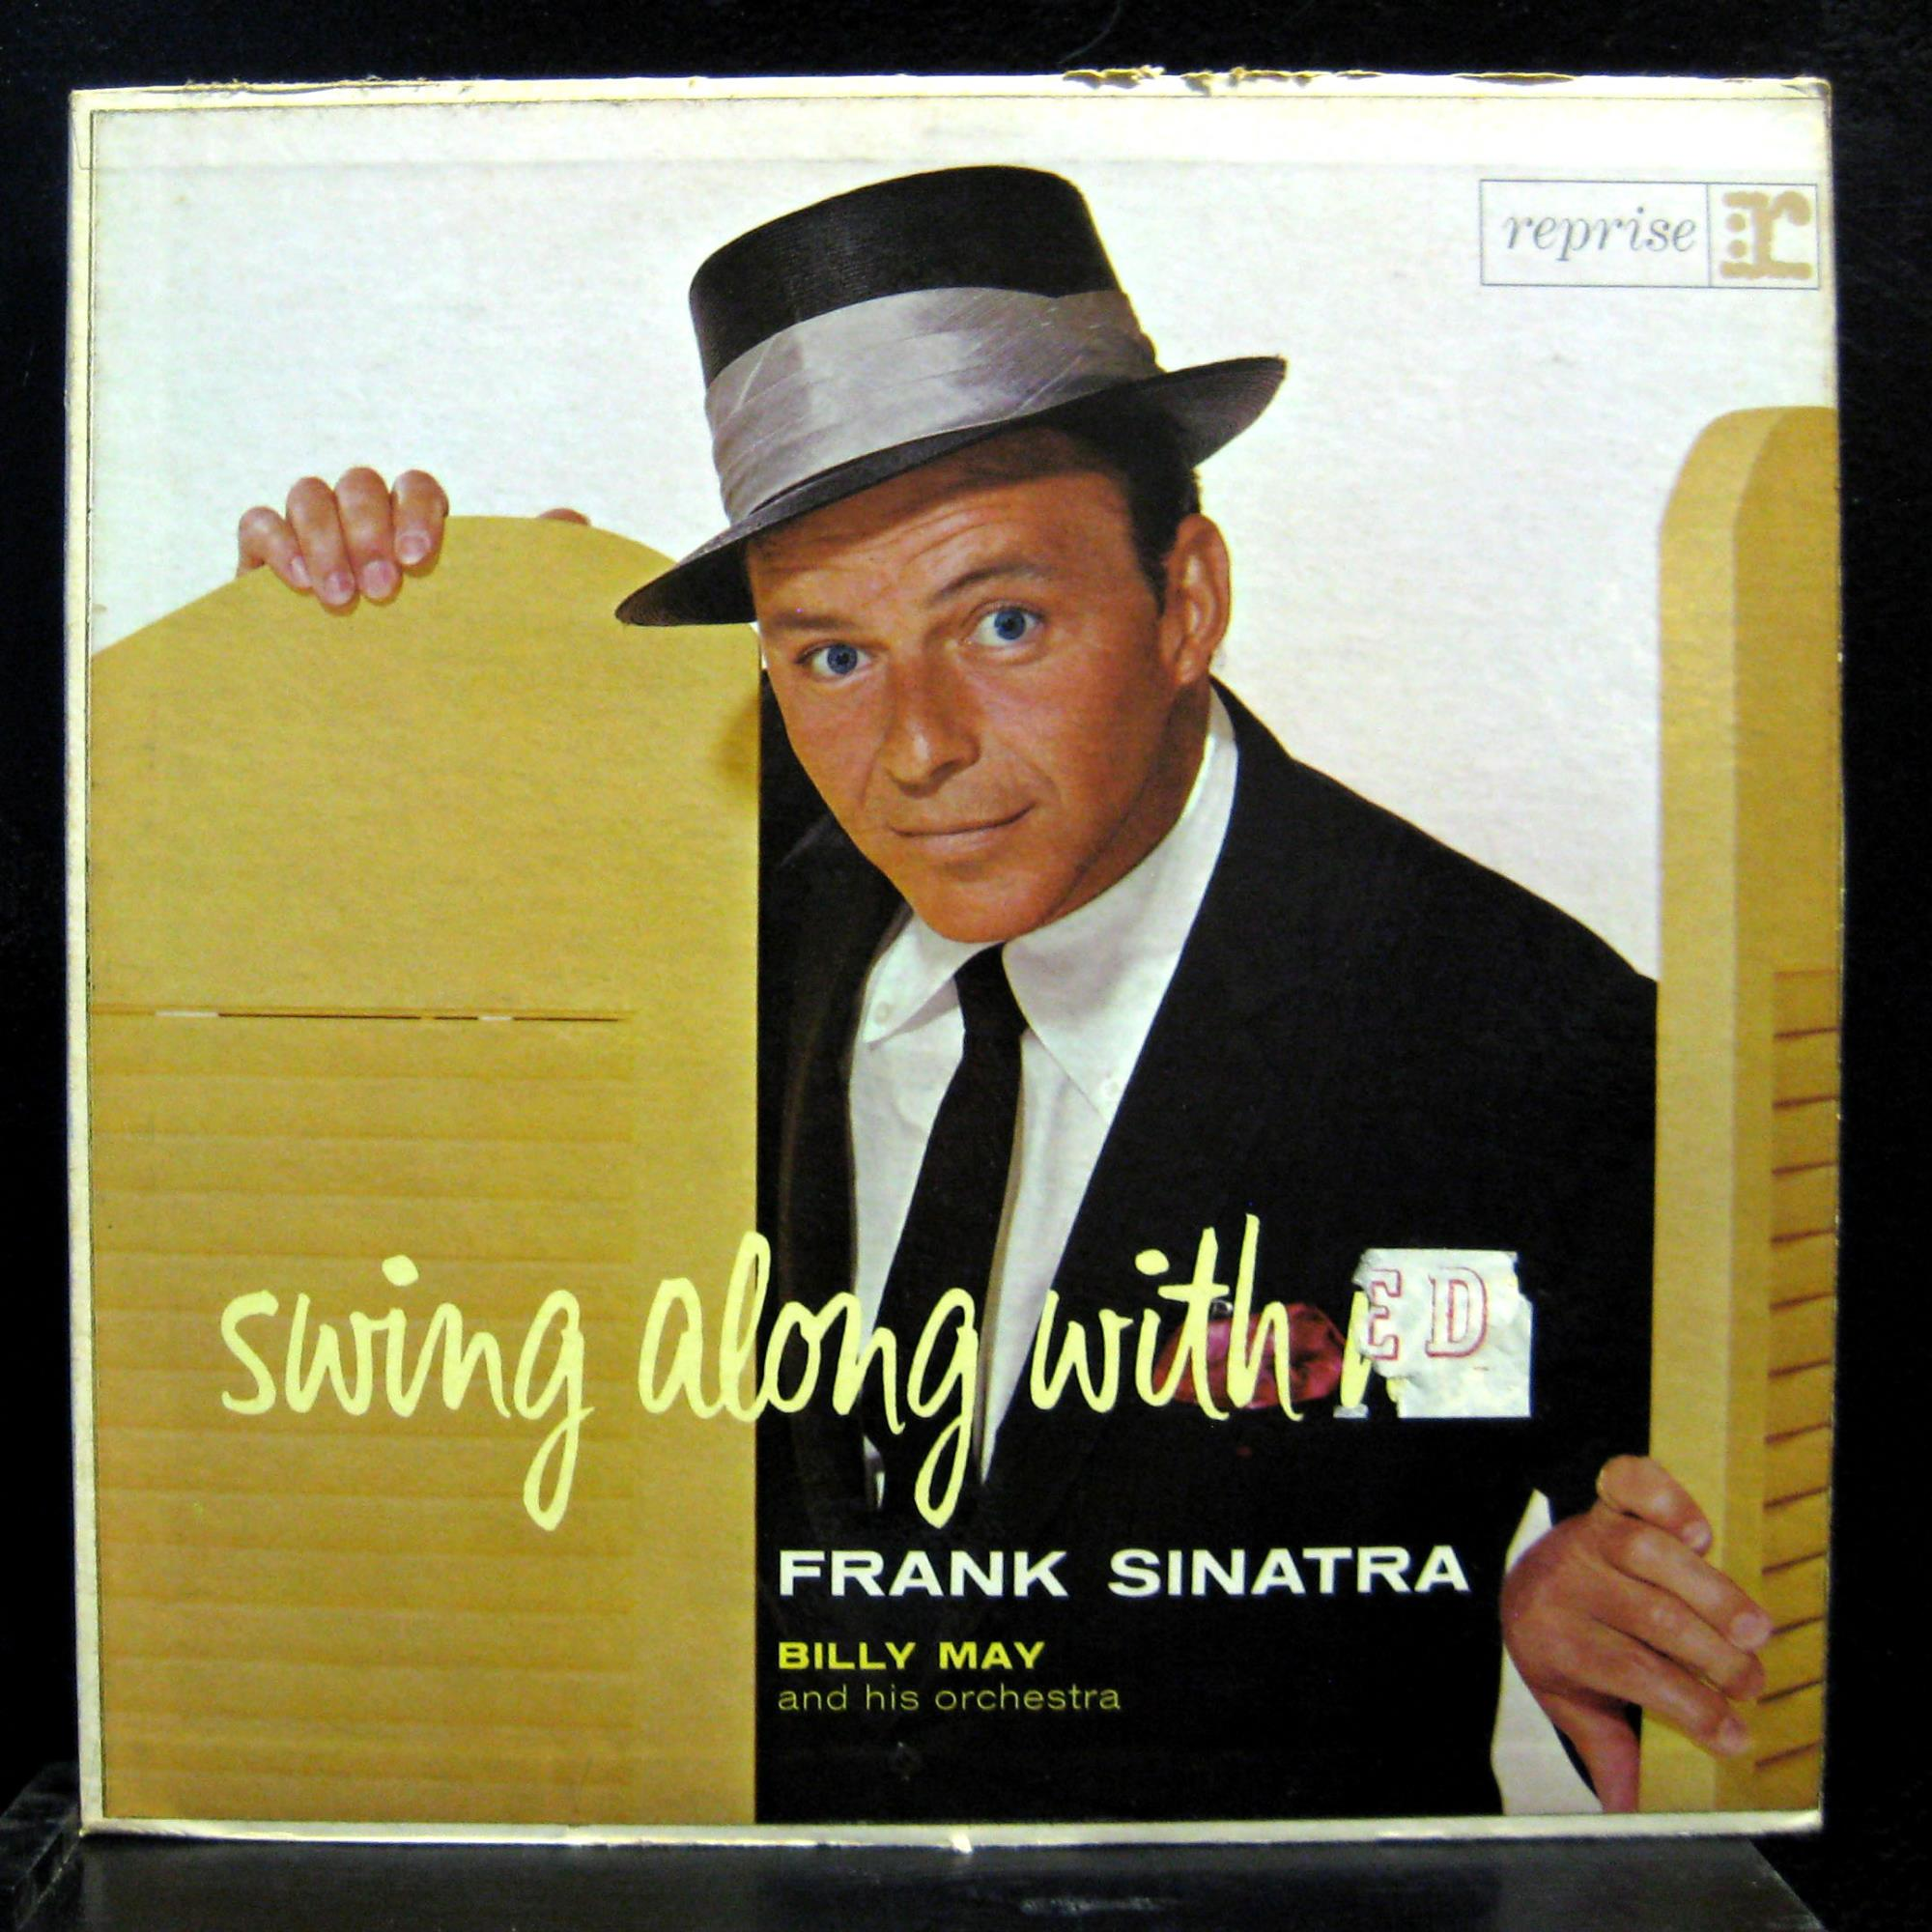 Frank Sinatra Swing Along With Me Lp Vg R9 1002 1st